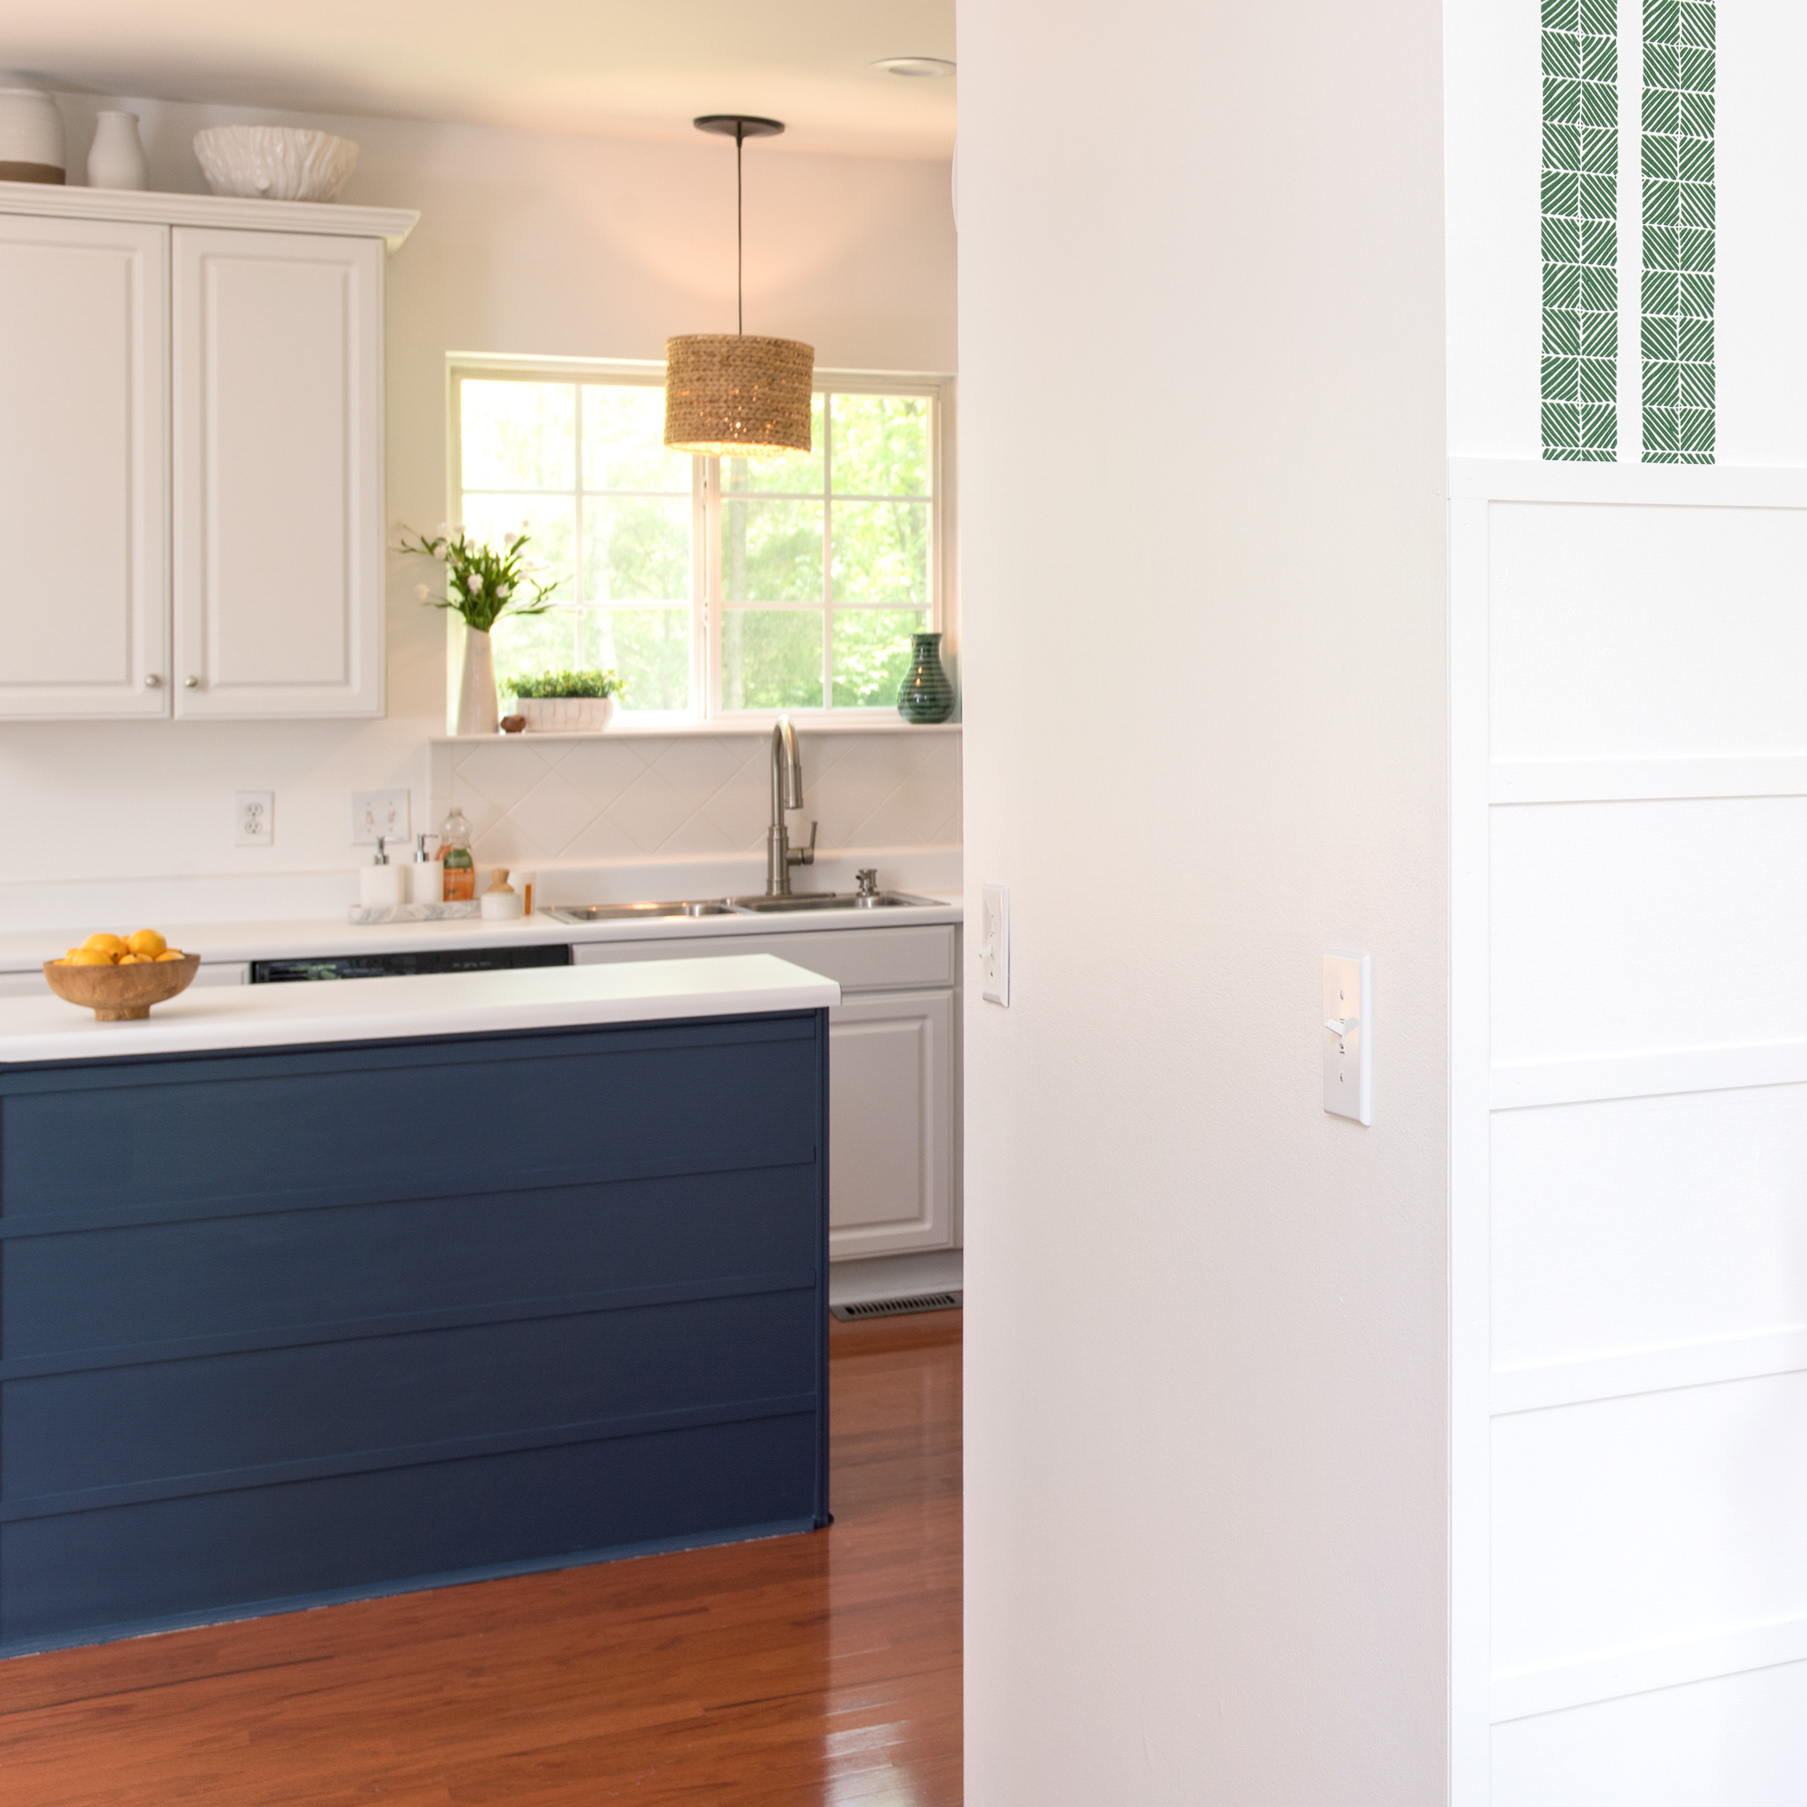 How To Install Horizontal Board And Batten: My Modern Shiplap DIY Knockoff On The Cheap | Here's how I installed this modern wainscoting in my dining room for under $200! #moderntrimideas #shiplapaccentwall #kitchenislandtrim